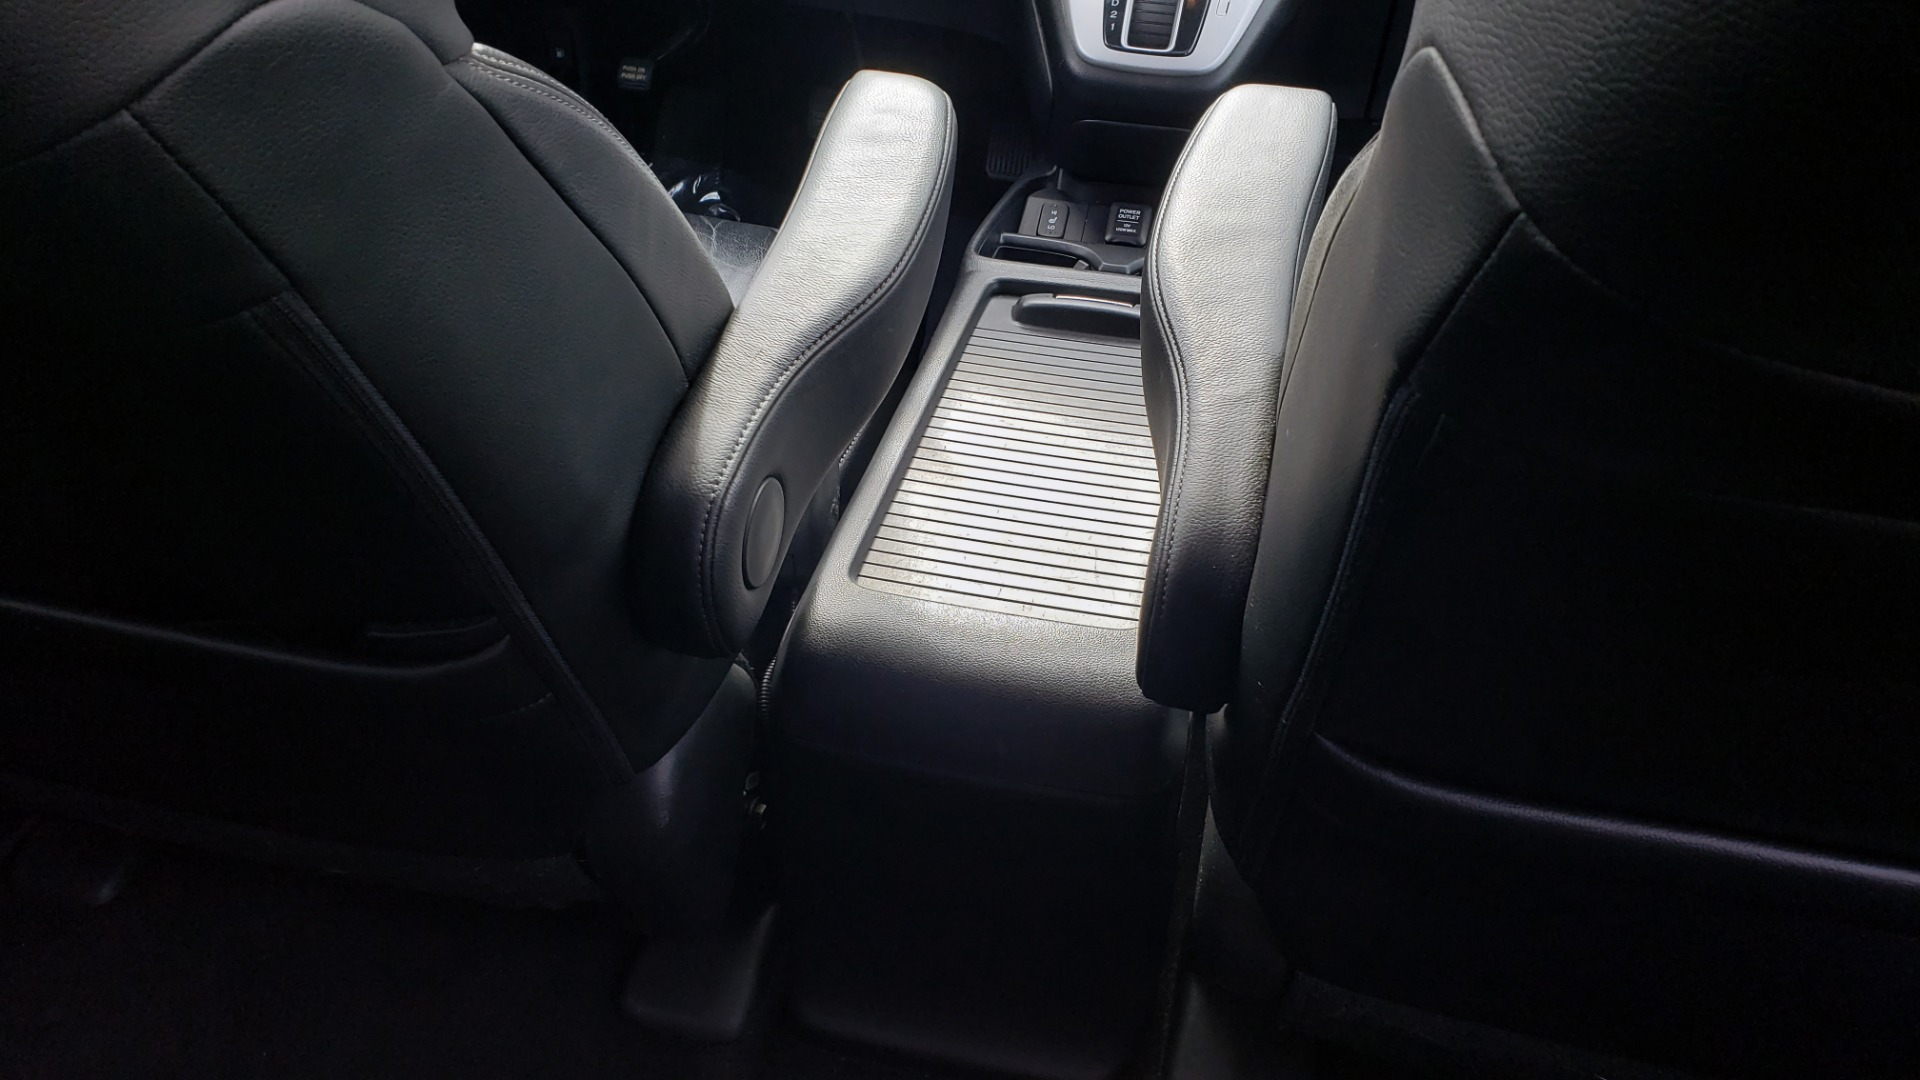 Used 2012 Honda CR-V EX-L / AWD / 5DR / SUNROOF / HEATED SEATS / REARVIEW for sale Sold at Formula Imports in Charlotte NC 28227 65